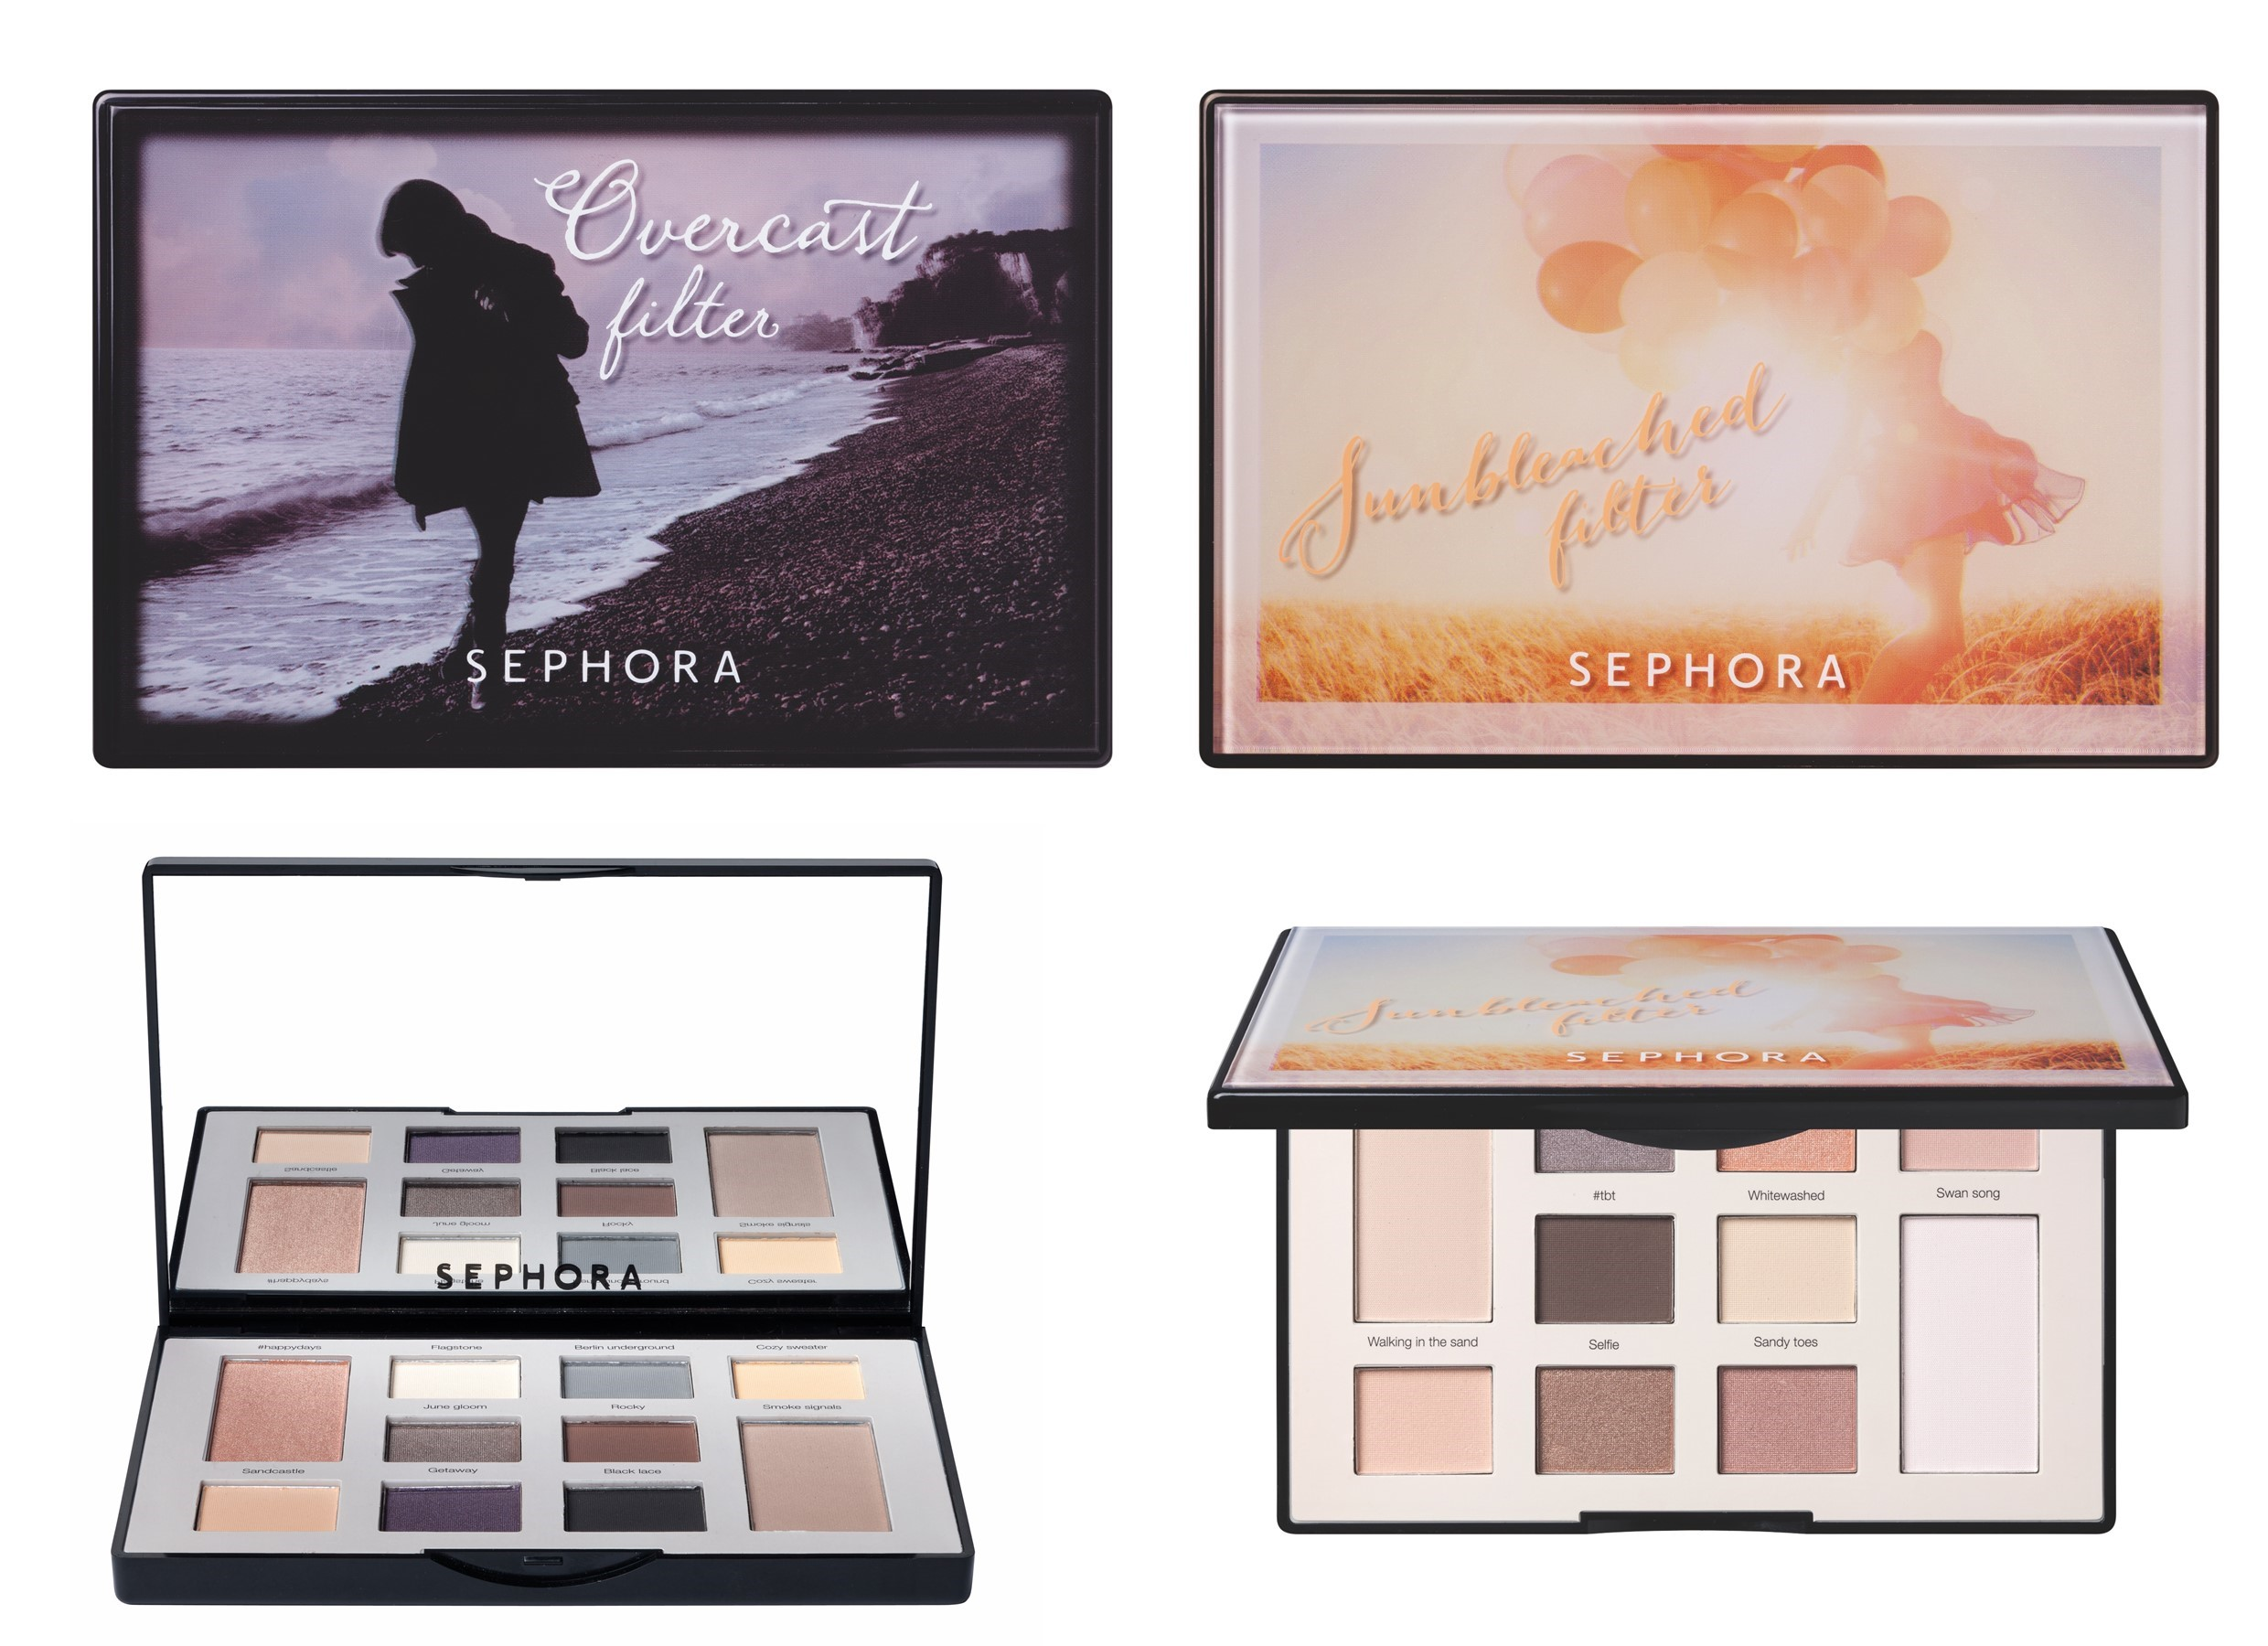 d528f3a232 Sephora Middle East: Beauty Treats for Summer 2016 – The Tezzy Files